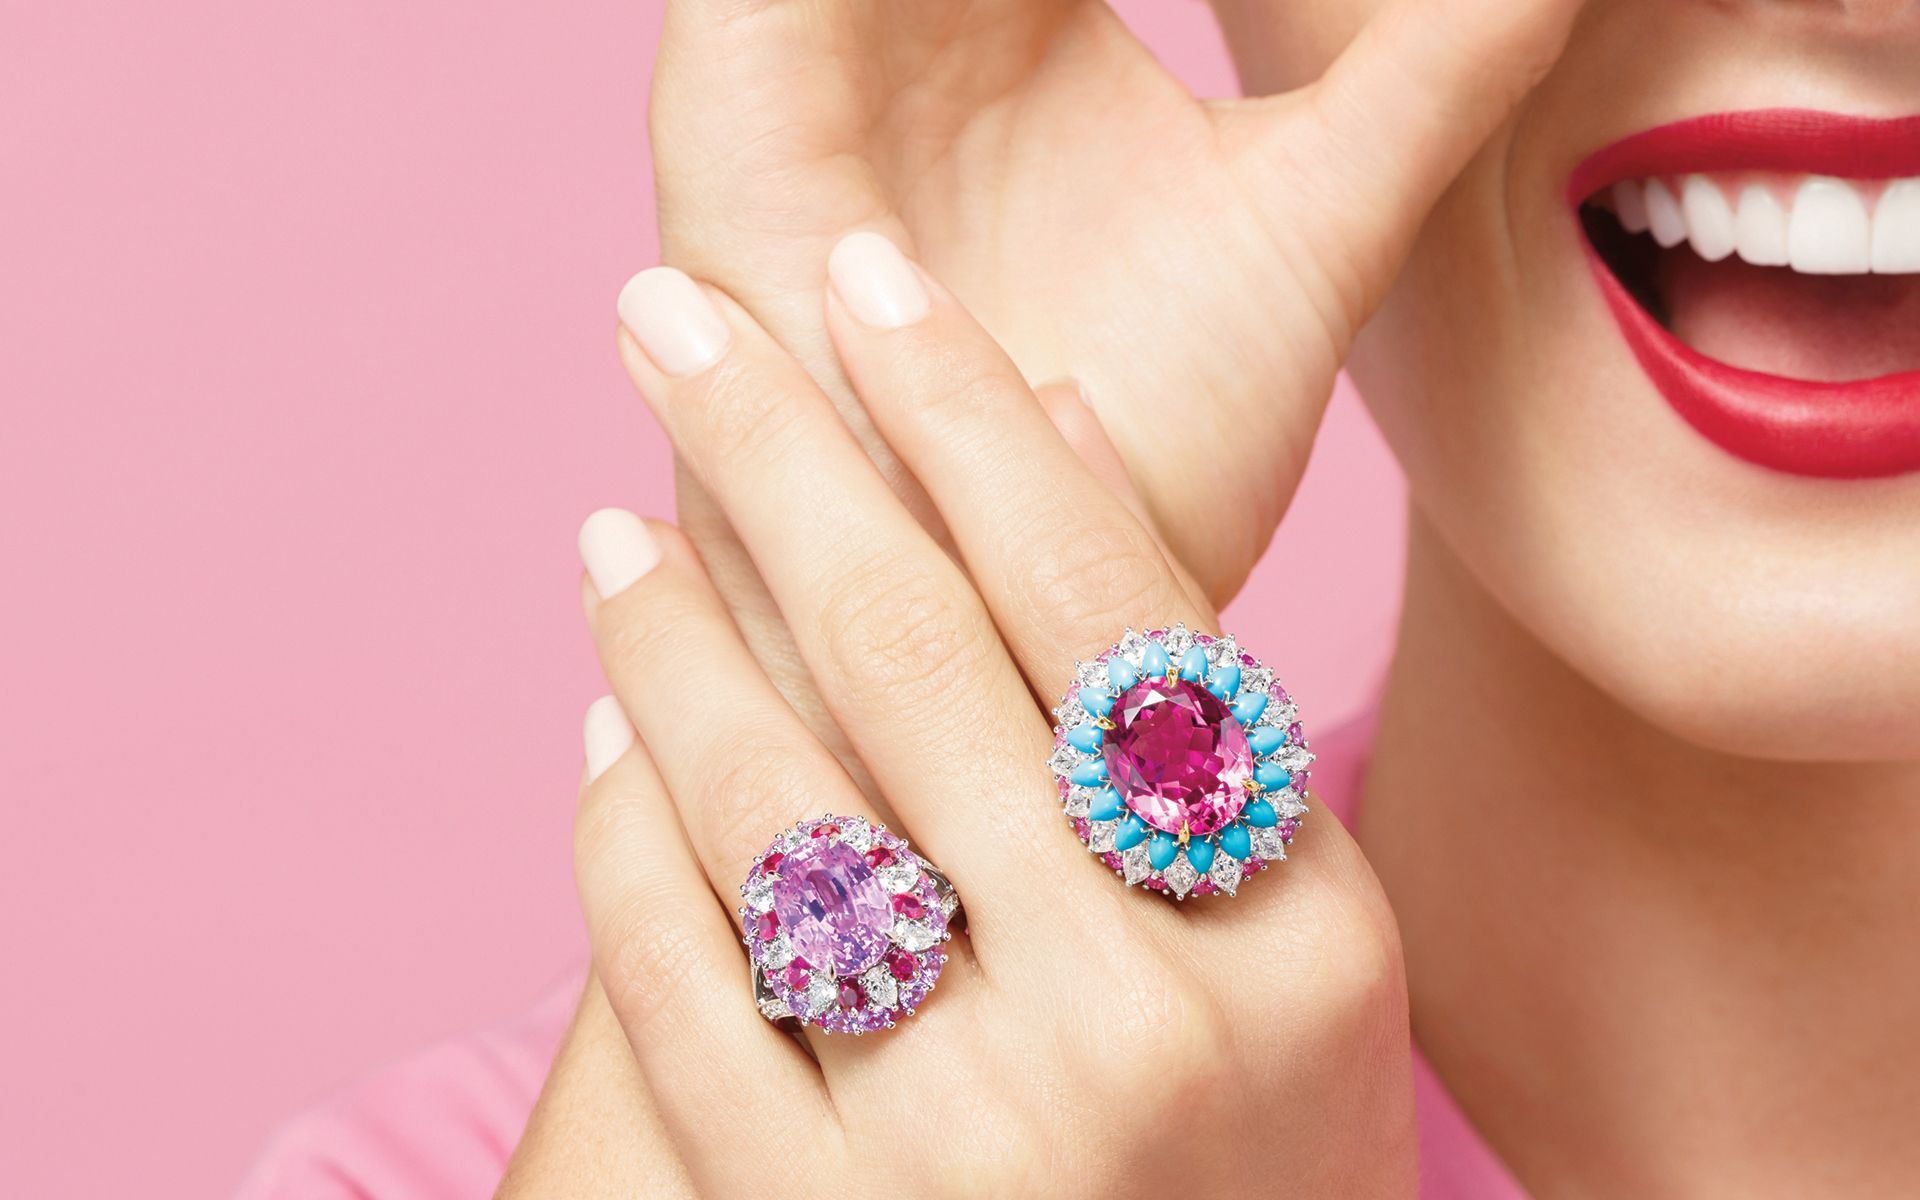 Winston Candy by Harry Winston coloured stones and cocktail rings in opposing shades